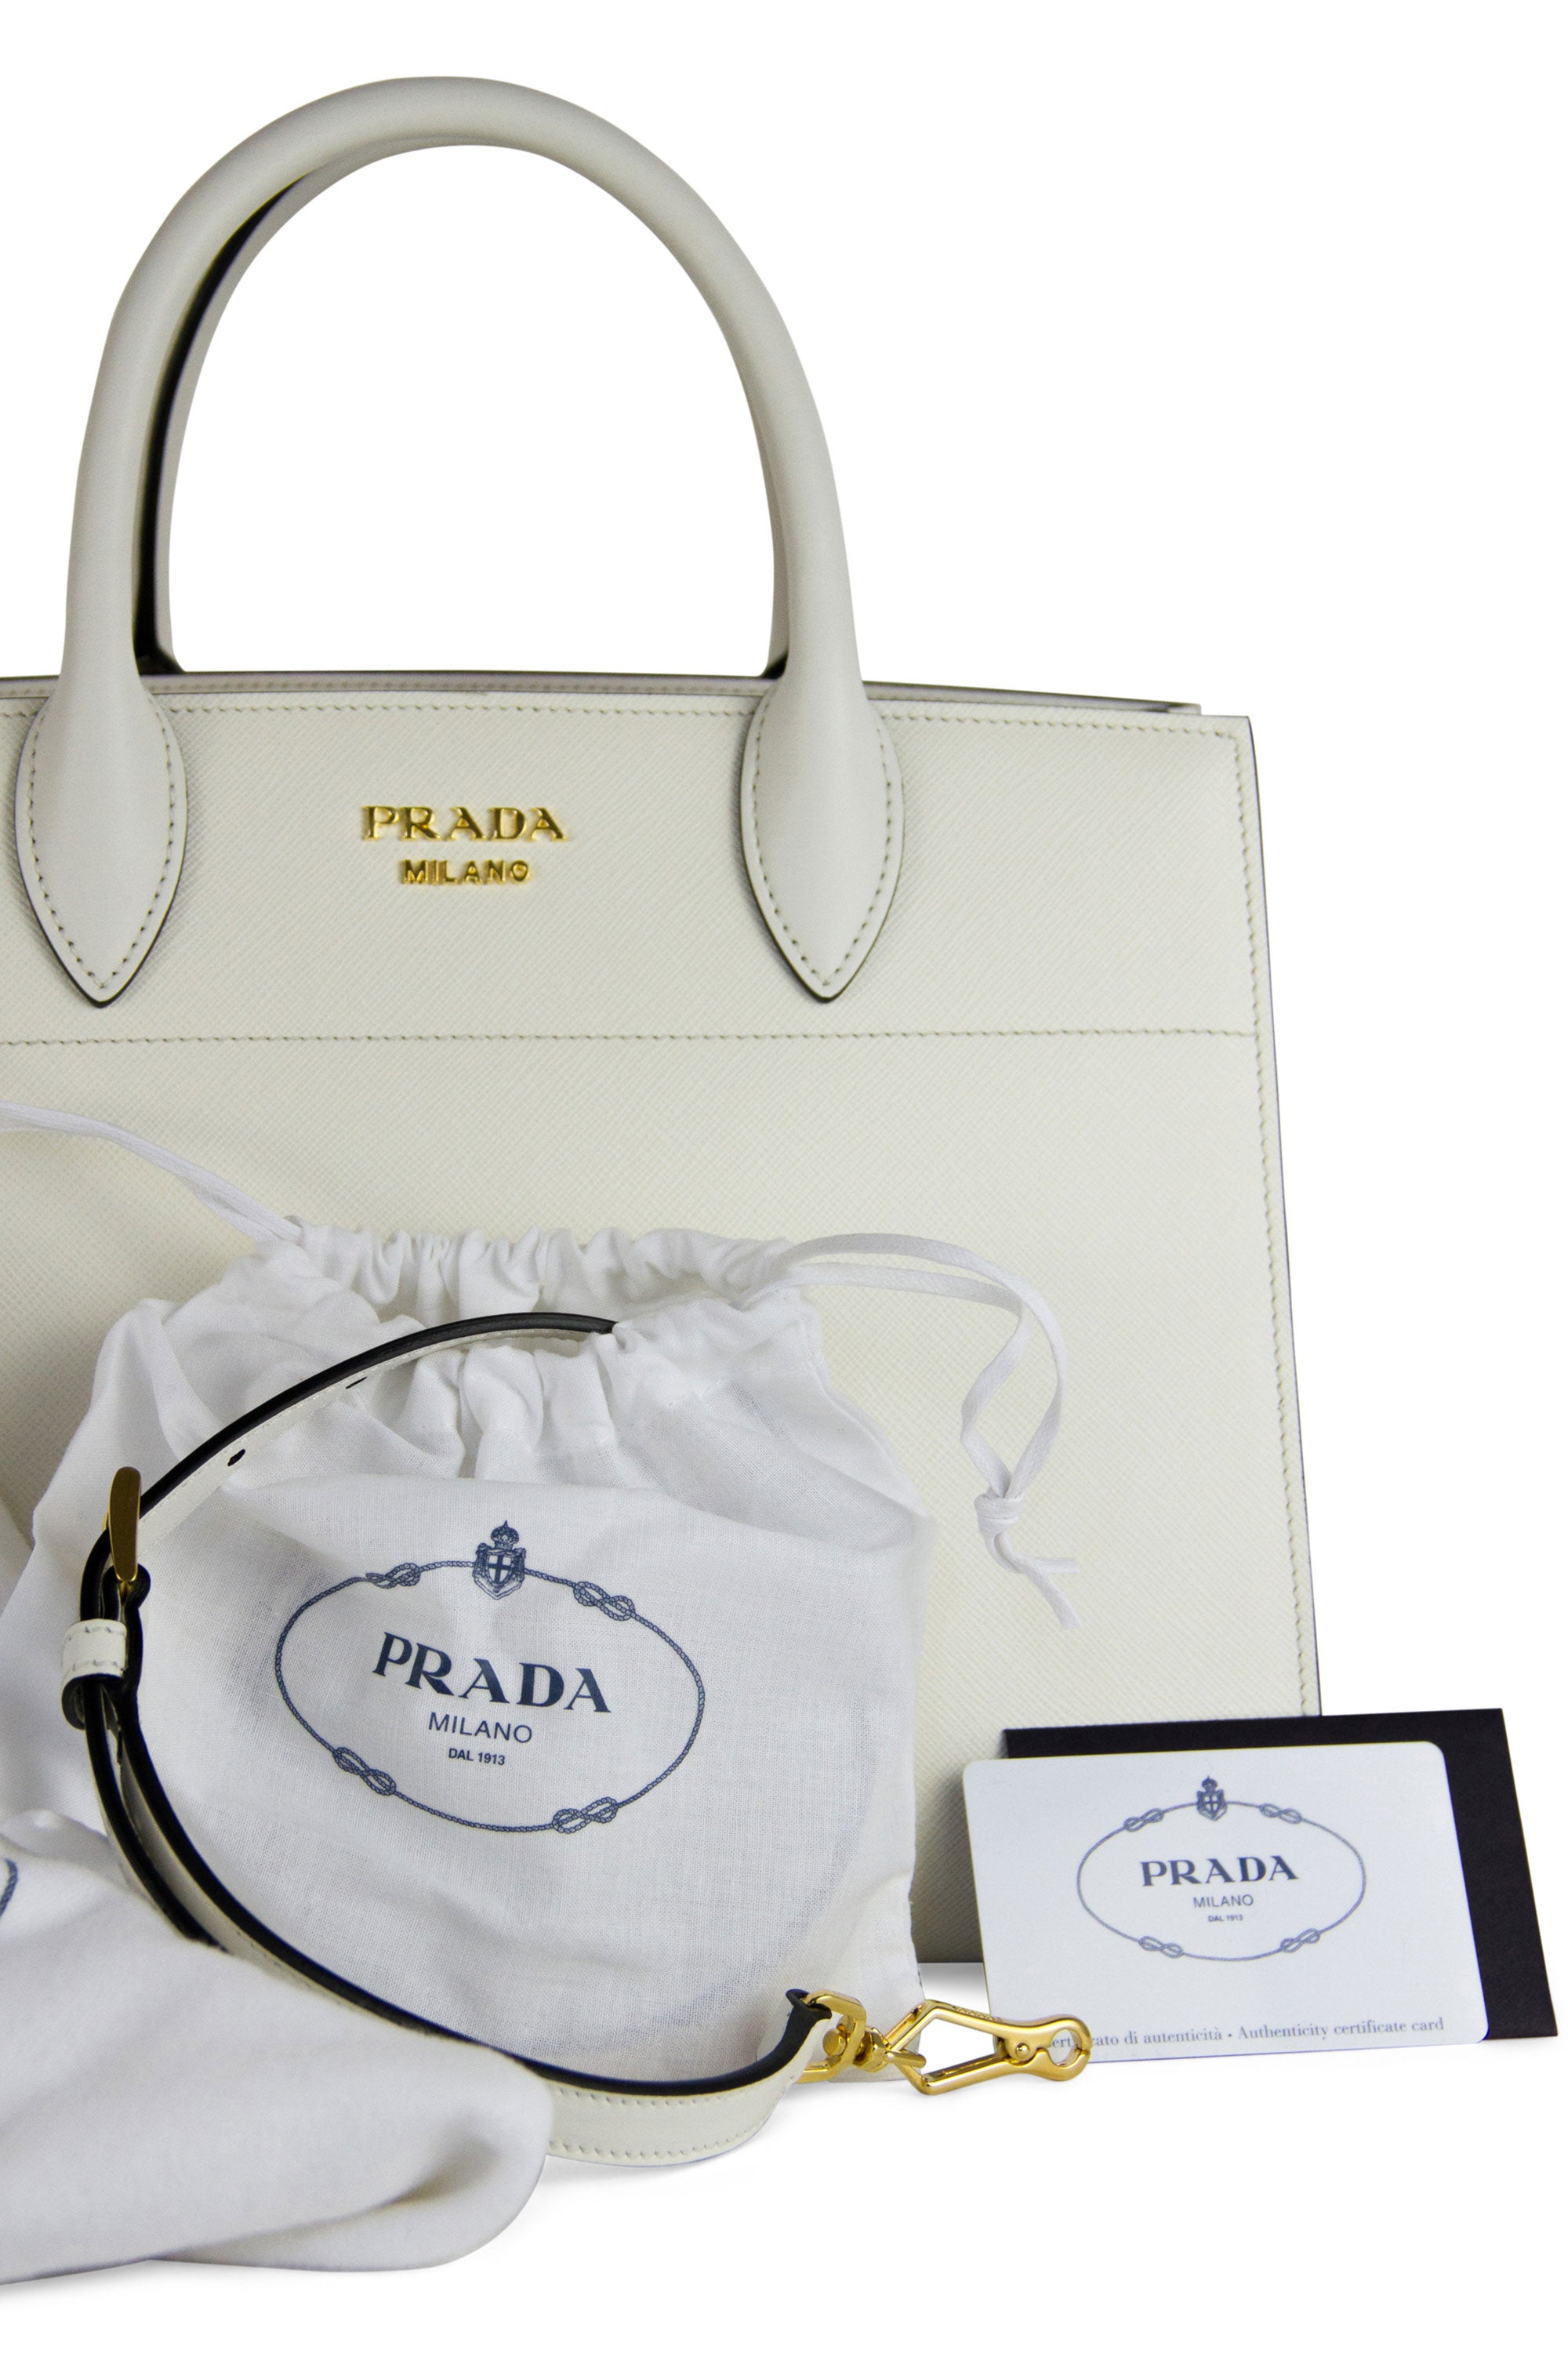 Prada Saffiano City Bibliotheque Bag Dustbag Zertifikat